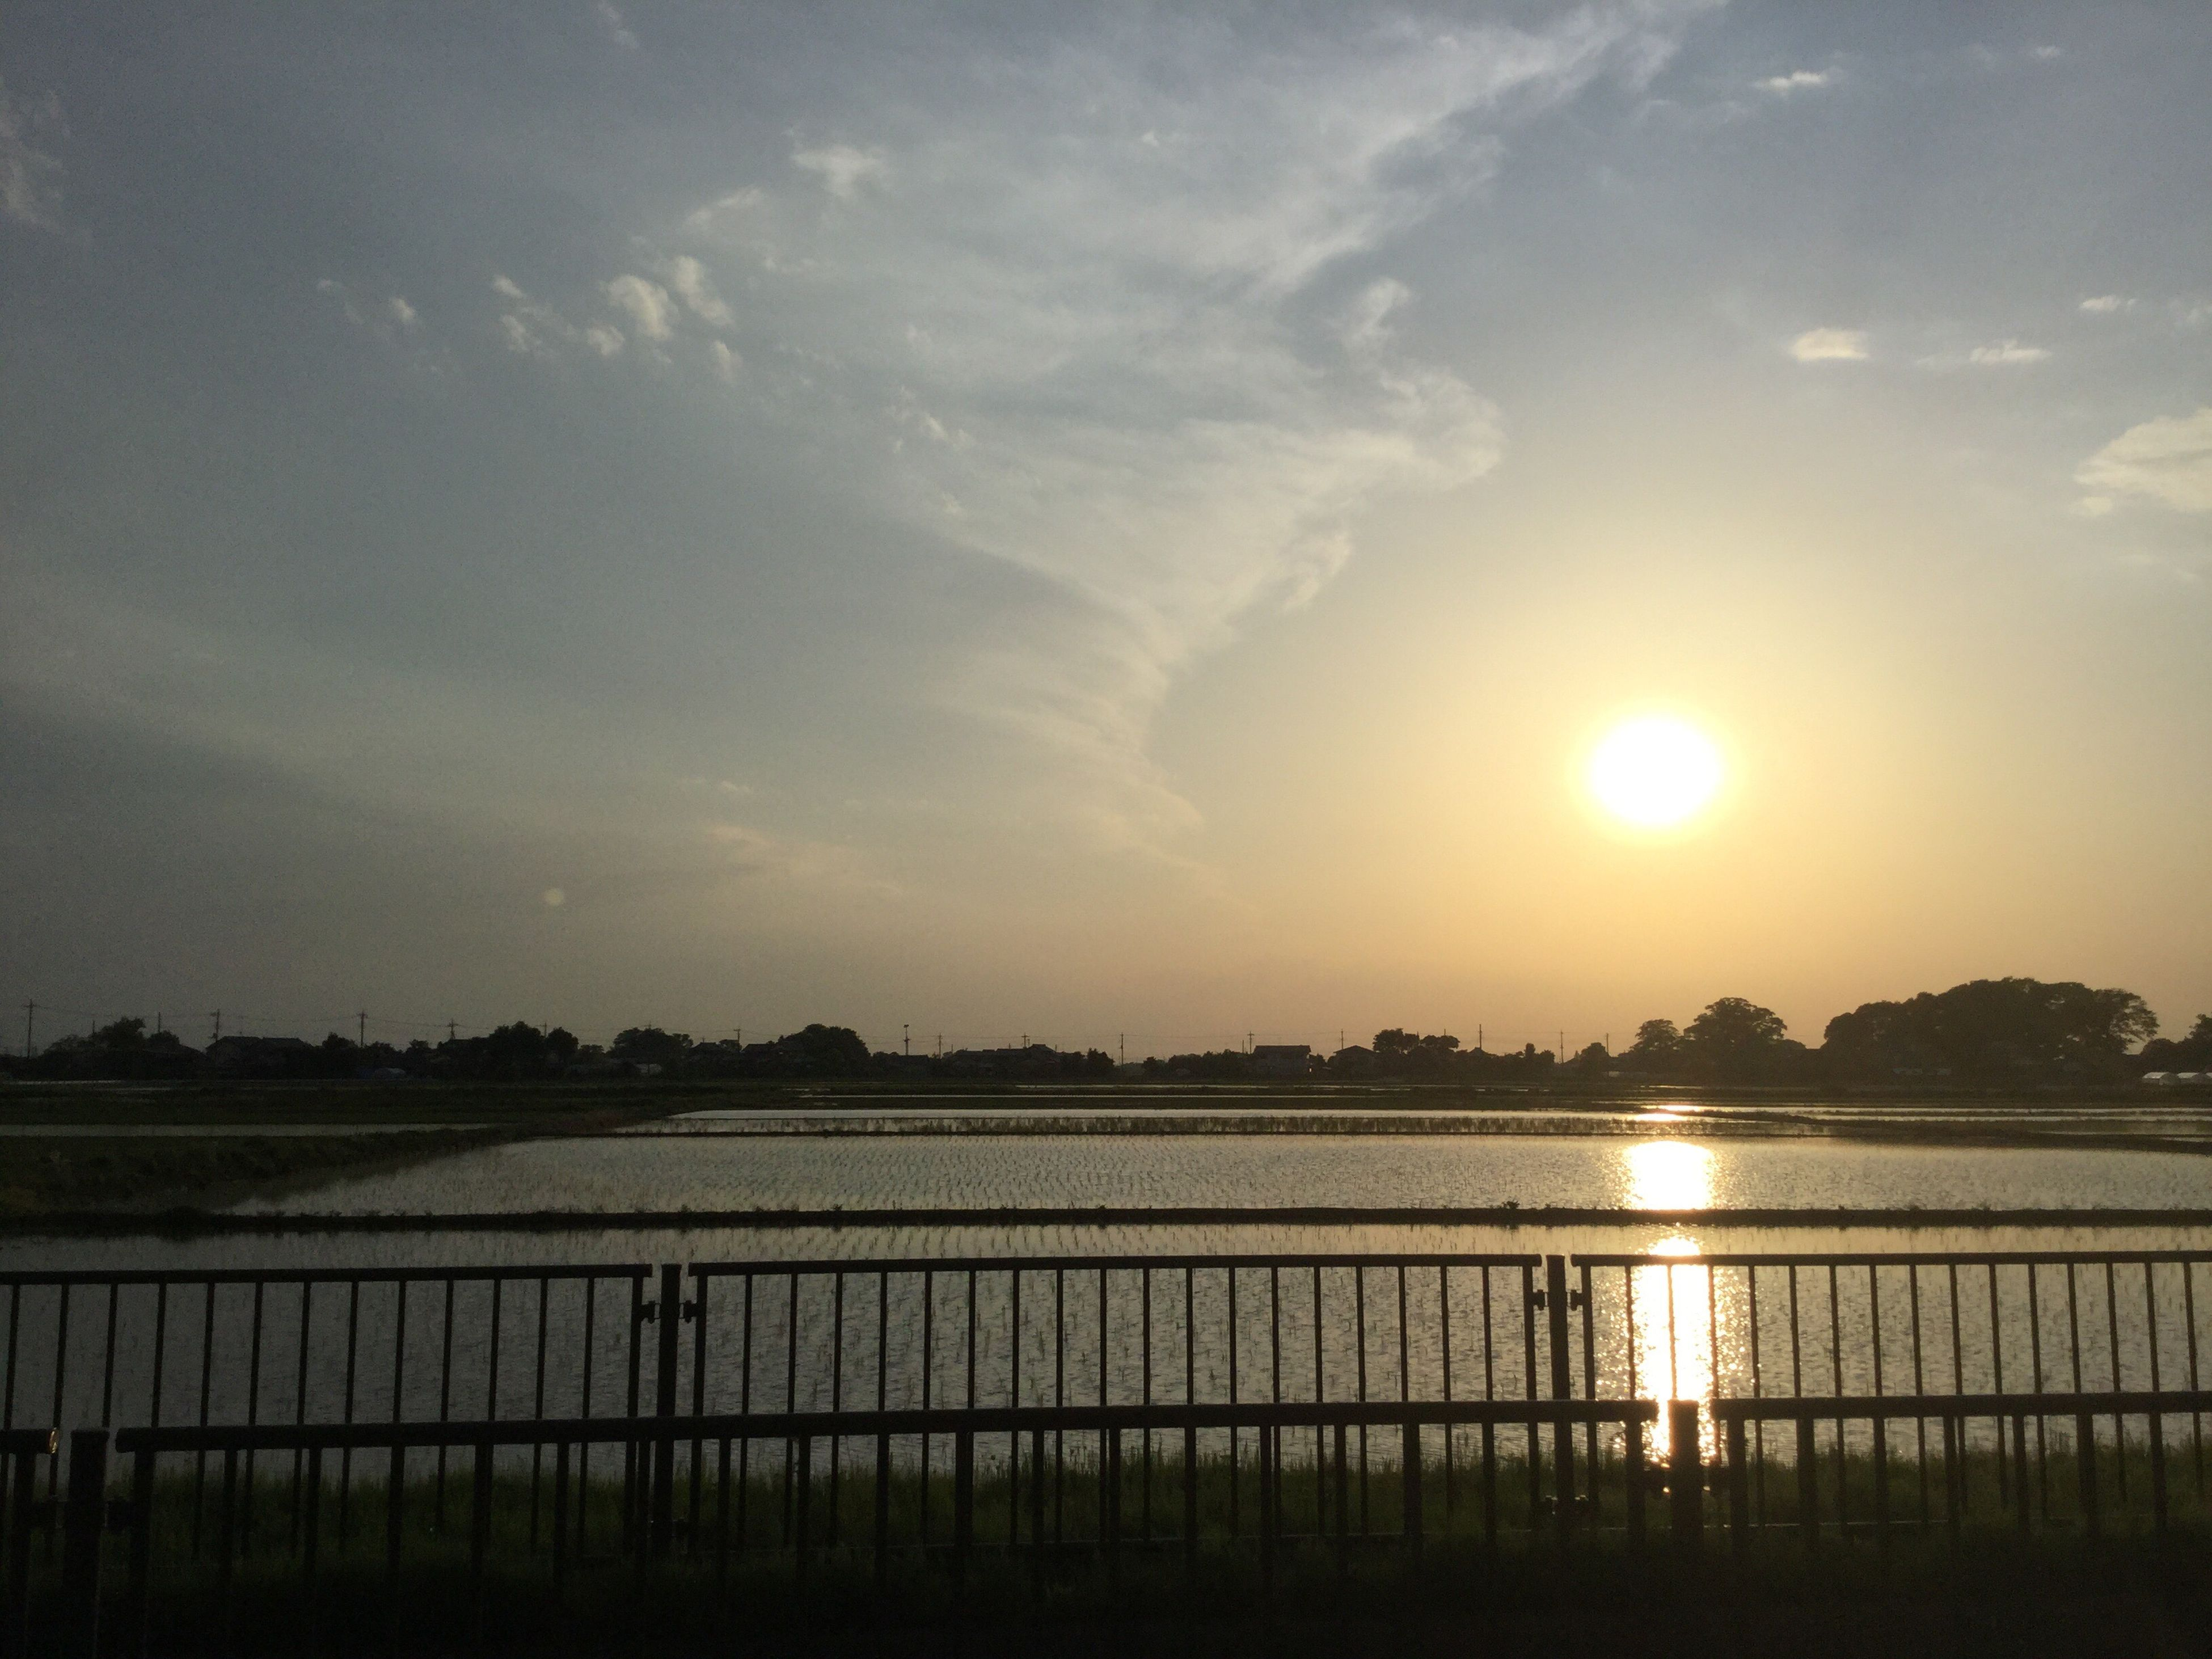 sunset, water, scenics, tranquility, beauty in nature, tranquil scene, nature, sky, sun, no people, lake, sunlight, outdoors, day